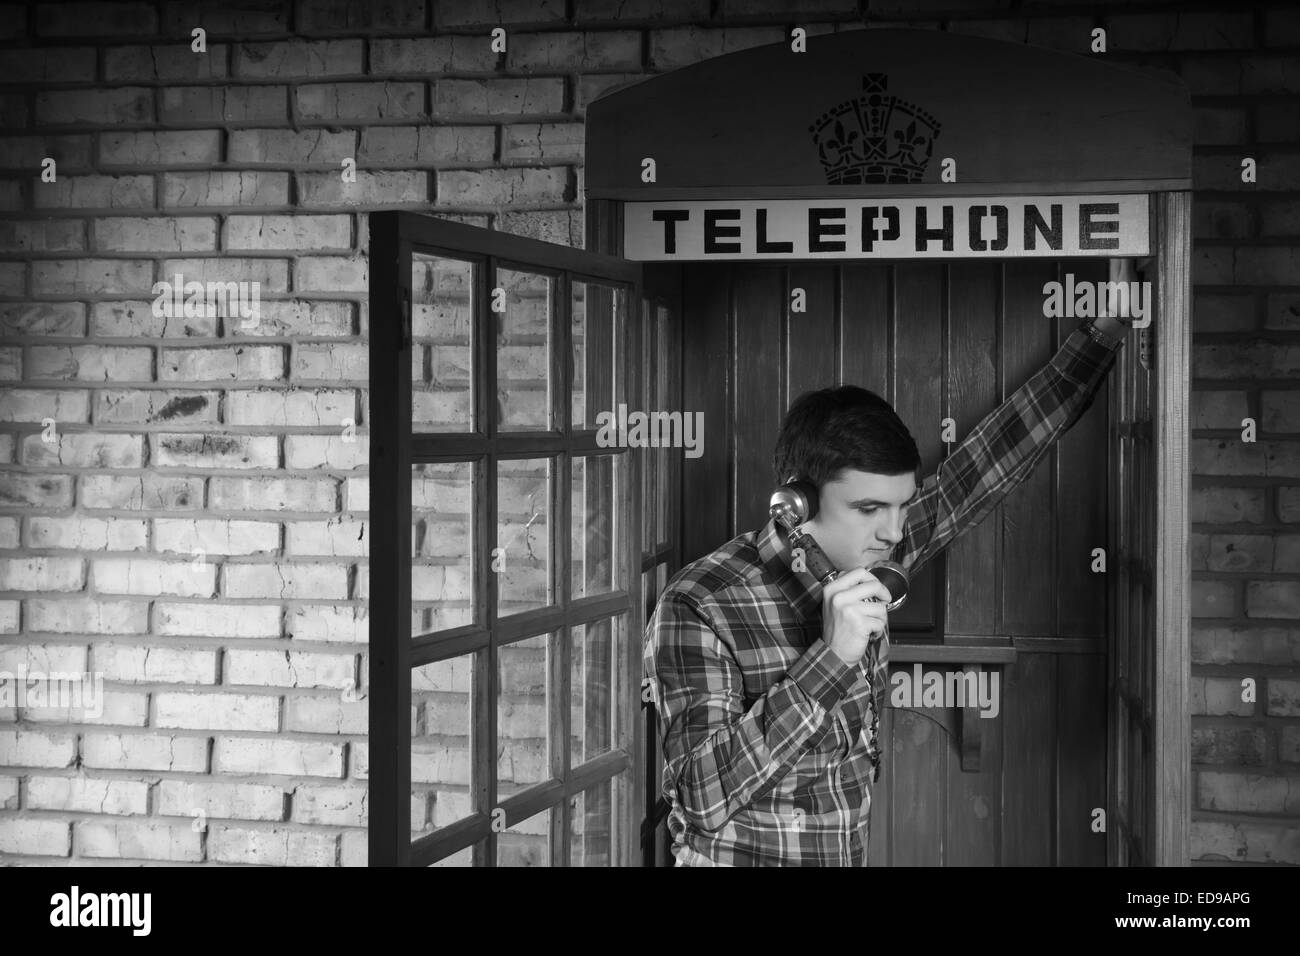 Young Man Calling Someone at the Telephone Booth with Brick Wall Background. Captured in Monochrome. - Stock Image